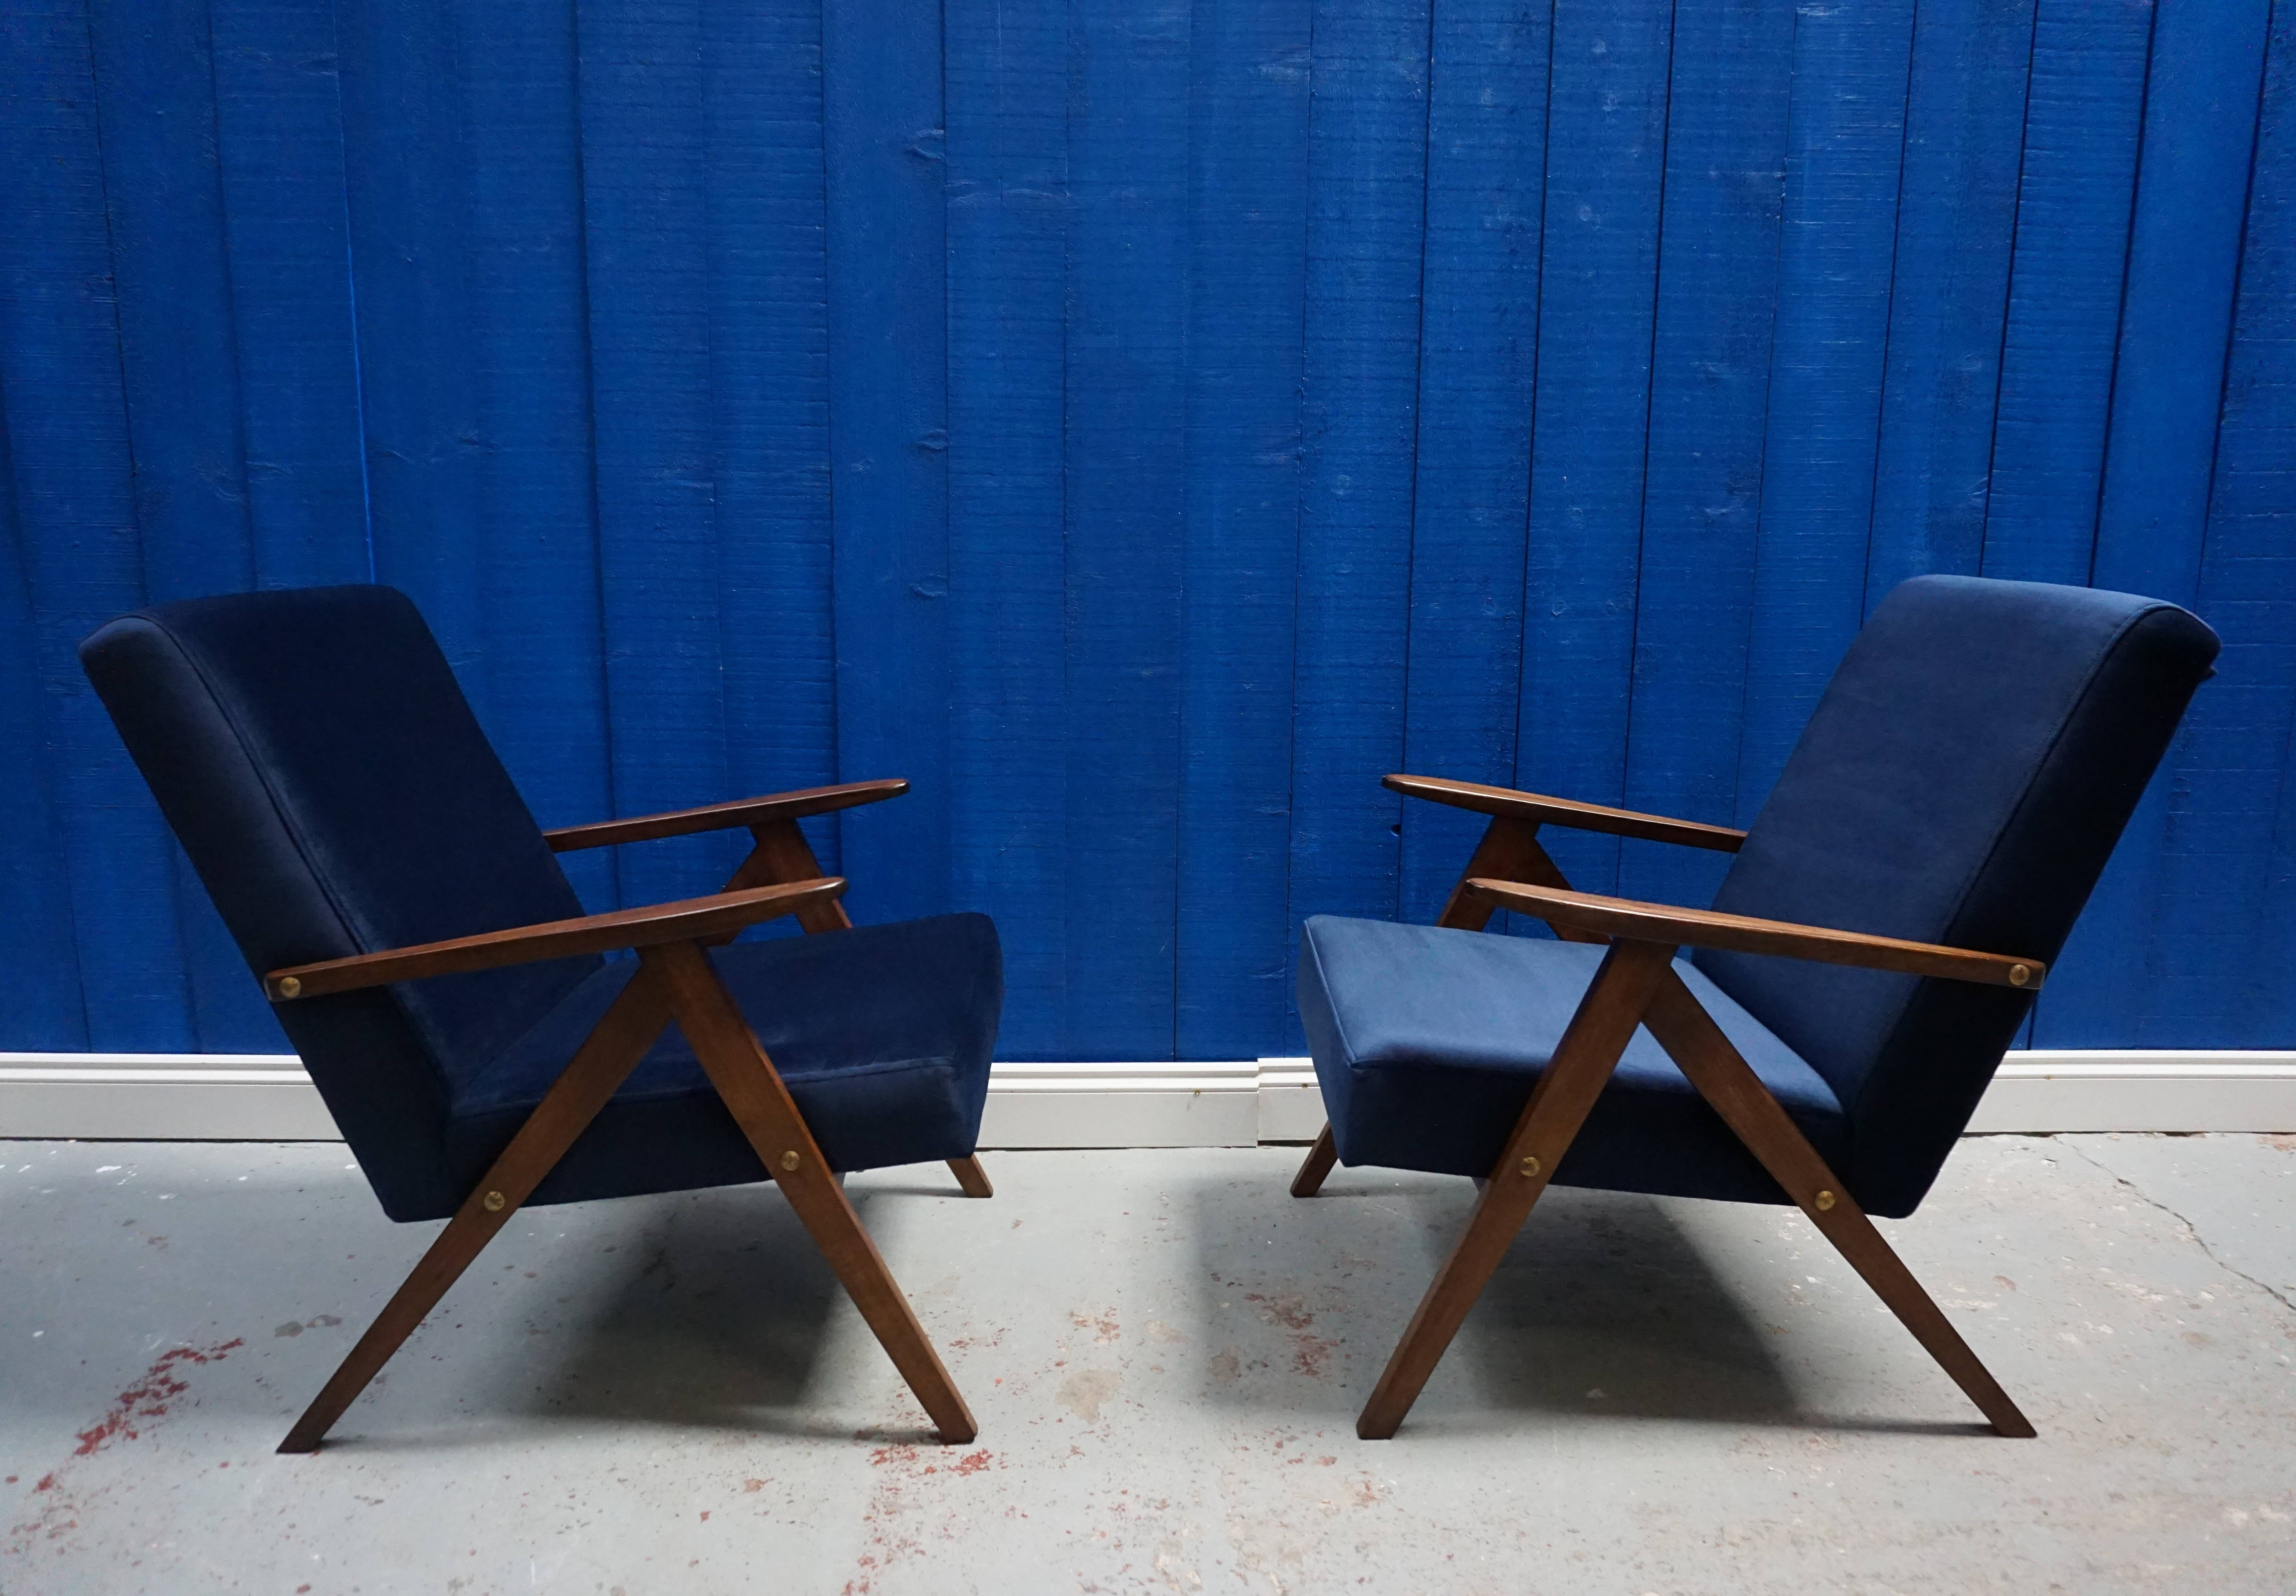 Pair Of Mid Century Modern Easy Chairs From 1960 S In Navy Blue